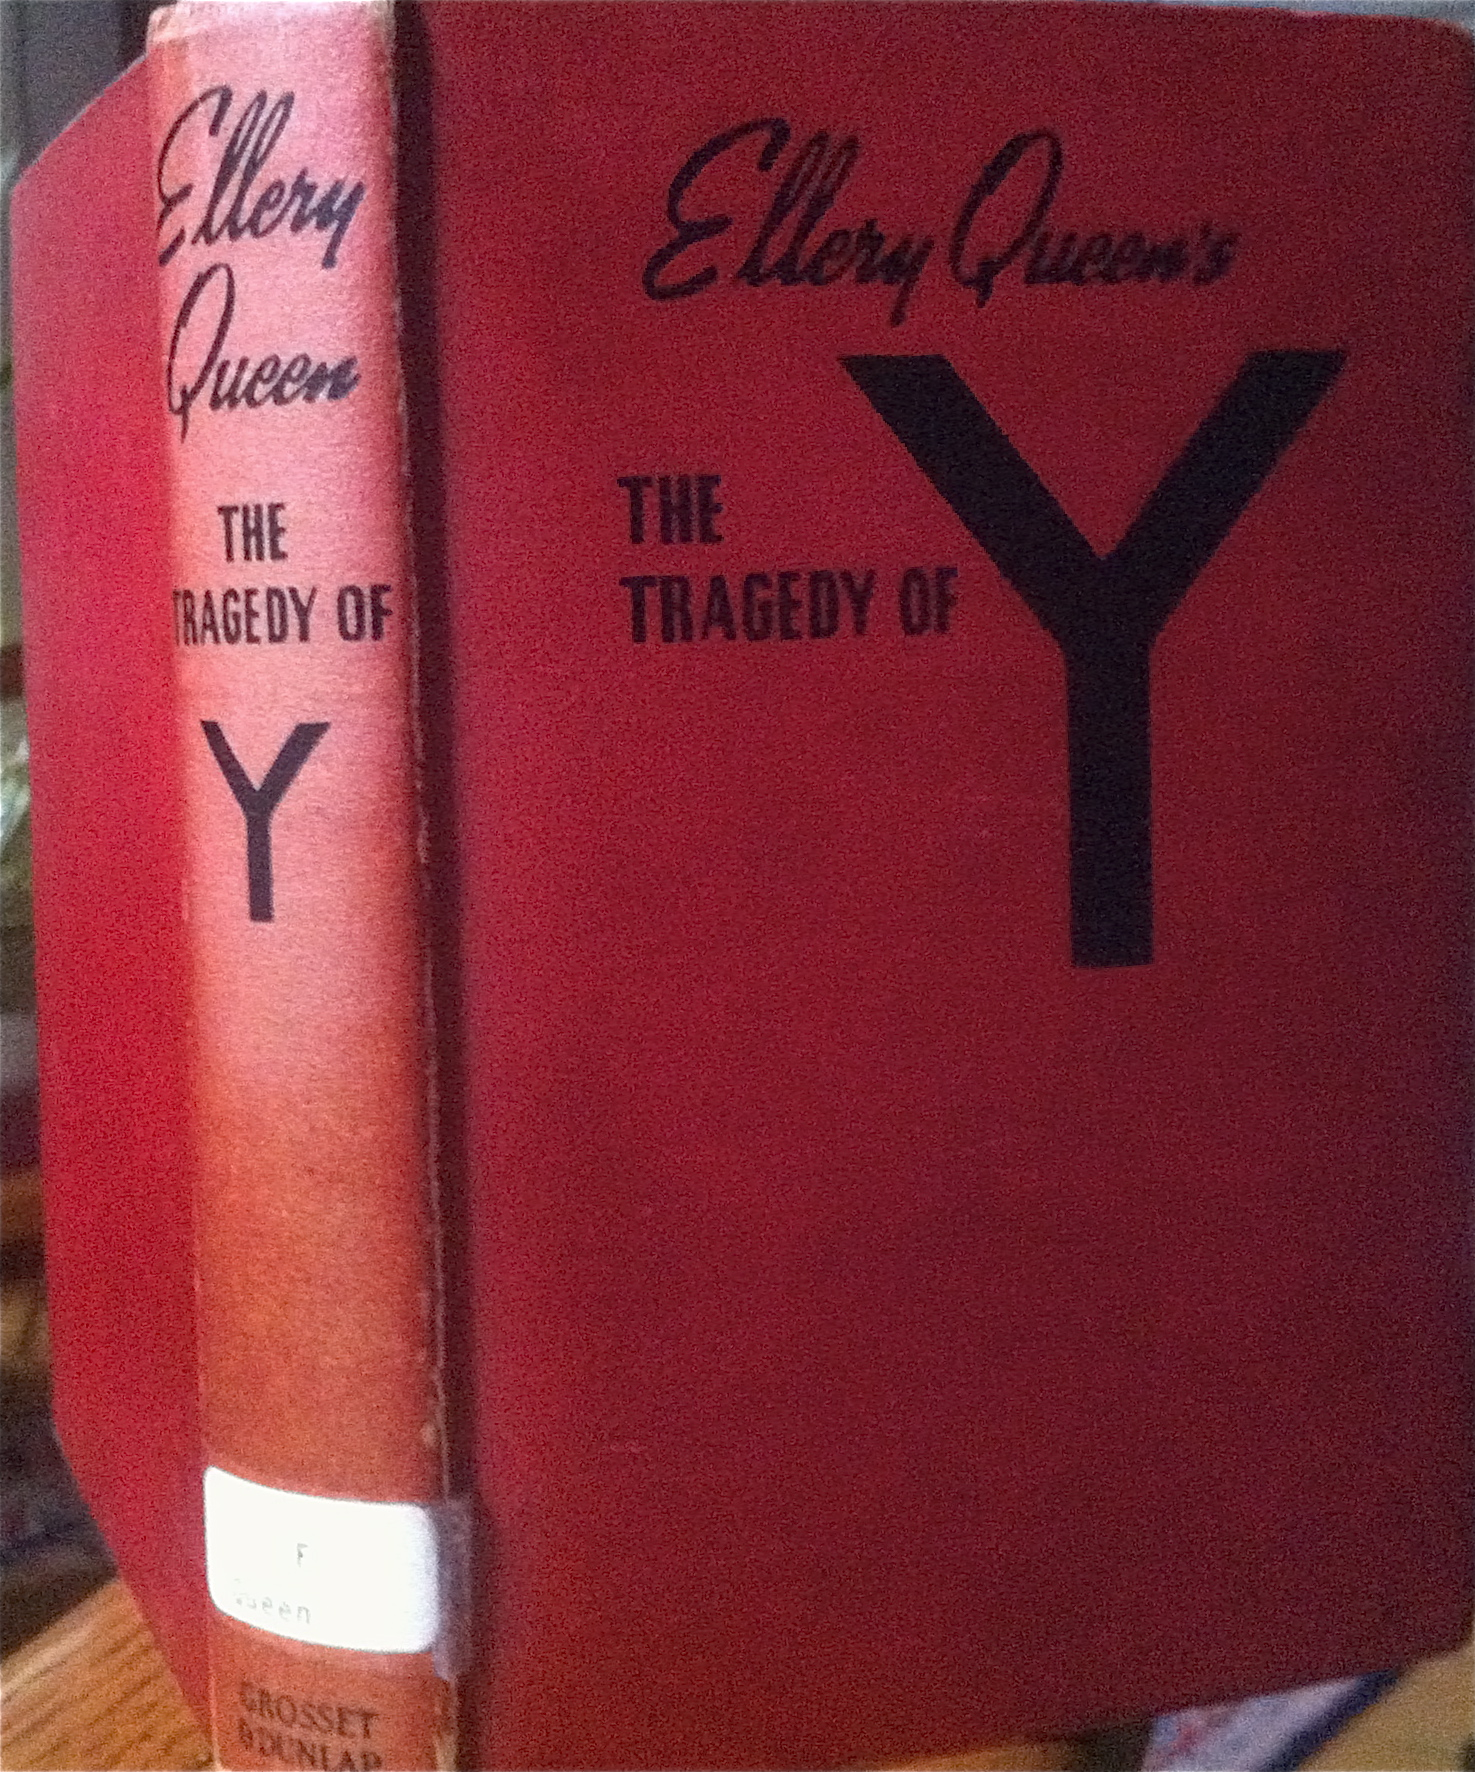 https://readingelleryqueen.files.wordpress.com/2013/07/tragedy-of-y-cover.jpg